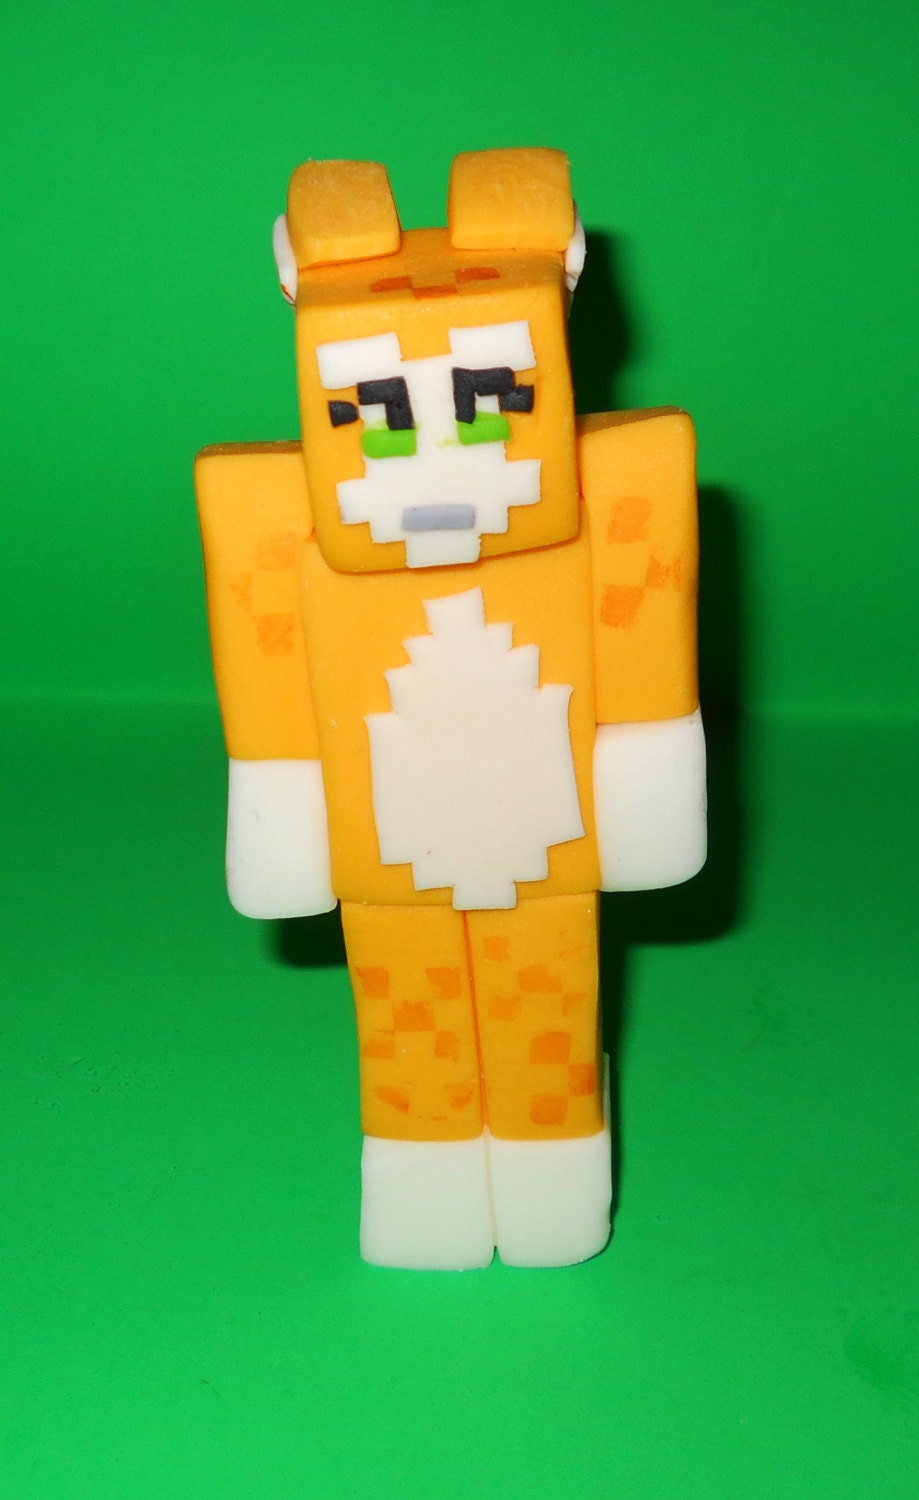 Minecraft Cake Decorations Uk : Stampy Cat Cake Topper inspired by Minecraft